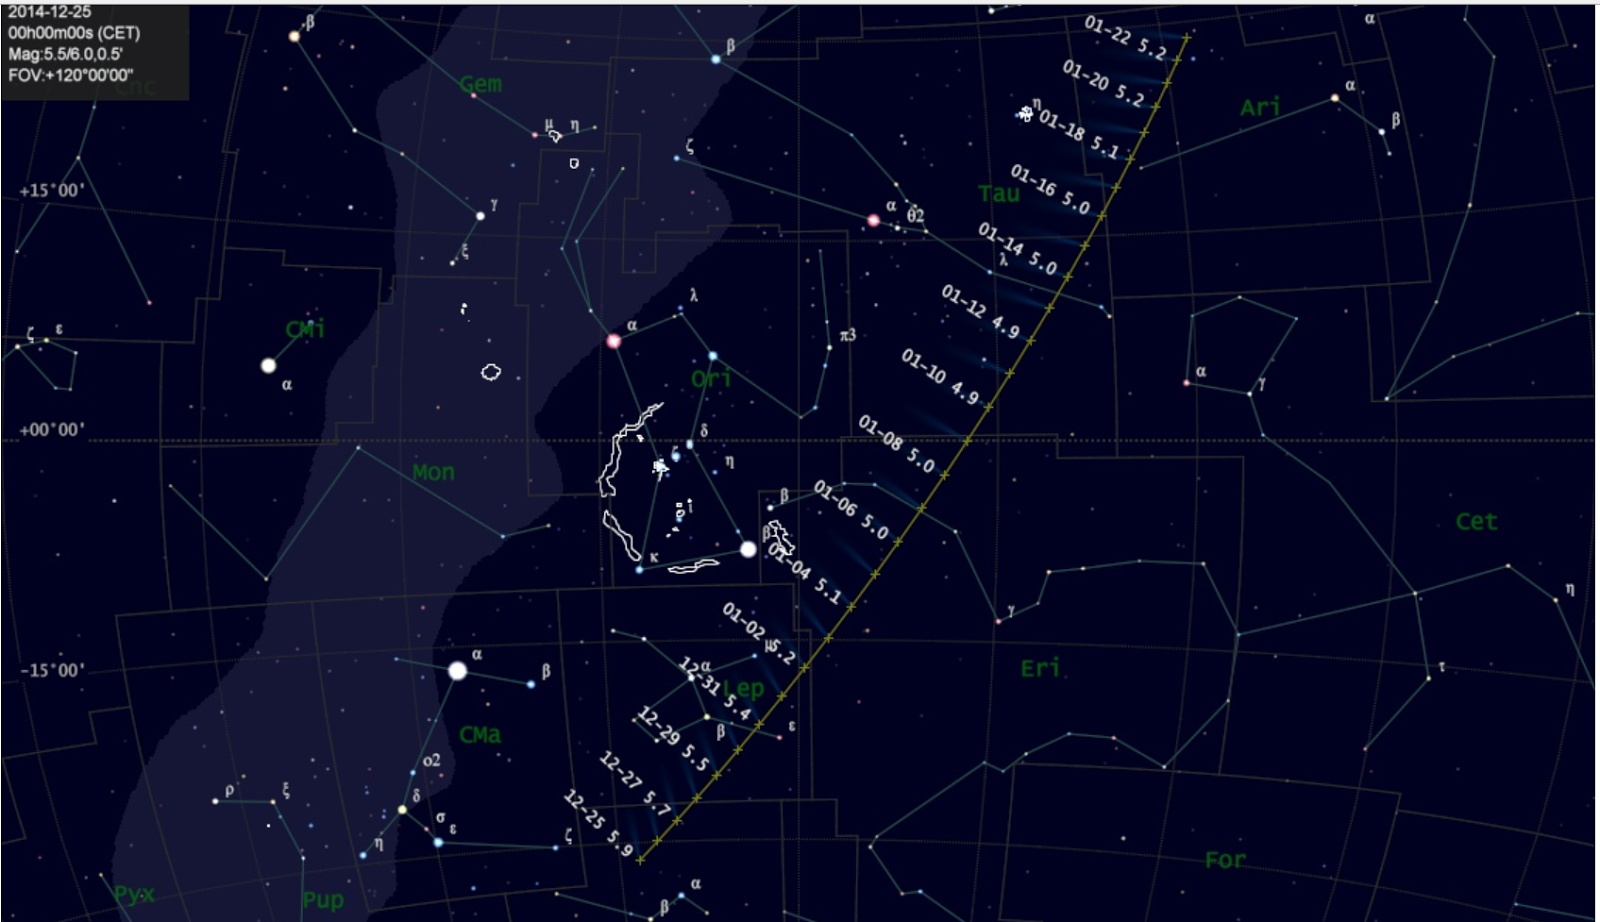 Comet Lovejoy path through the constellations